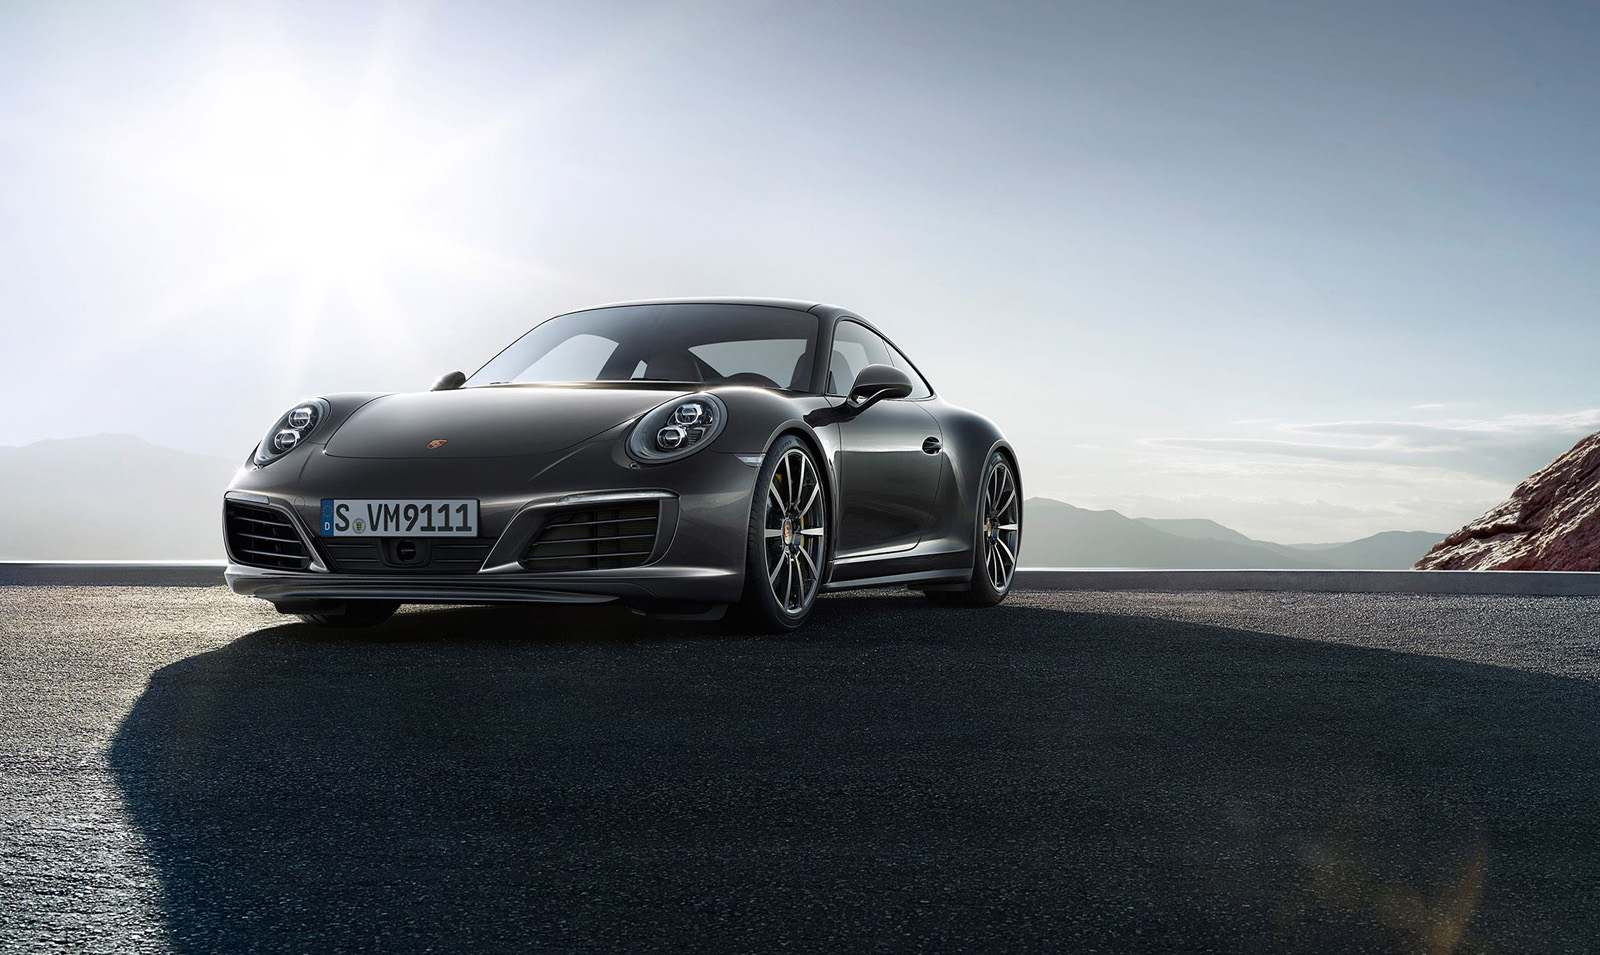 The 2017 Porsche 911 Might Look the Same, but it Has One Massive Surprise